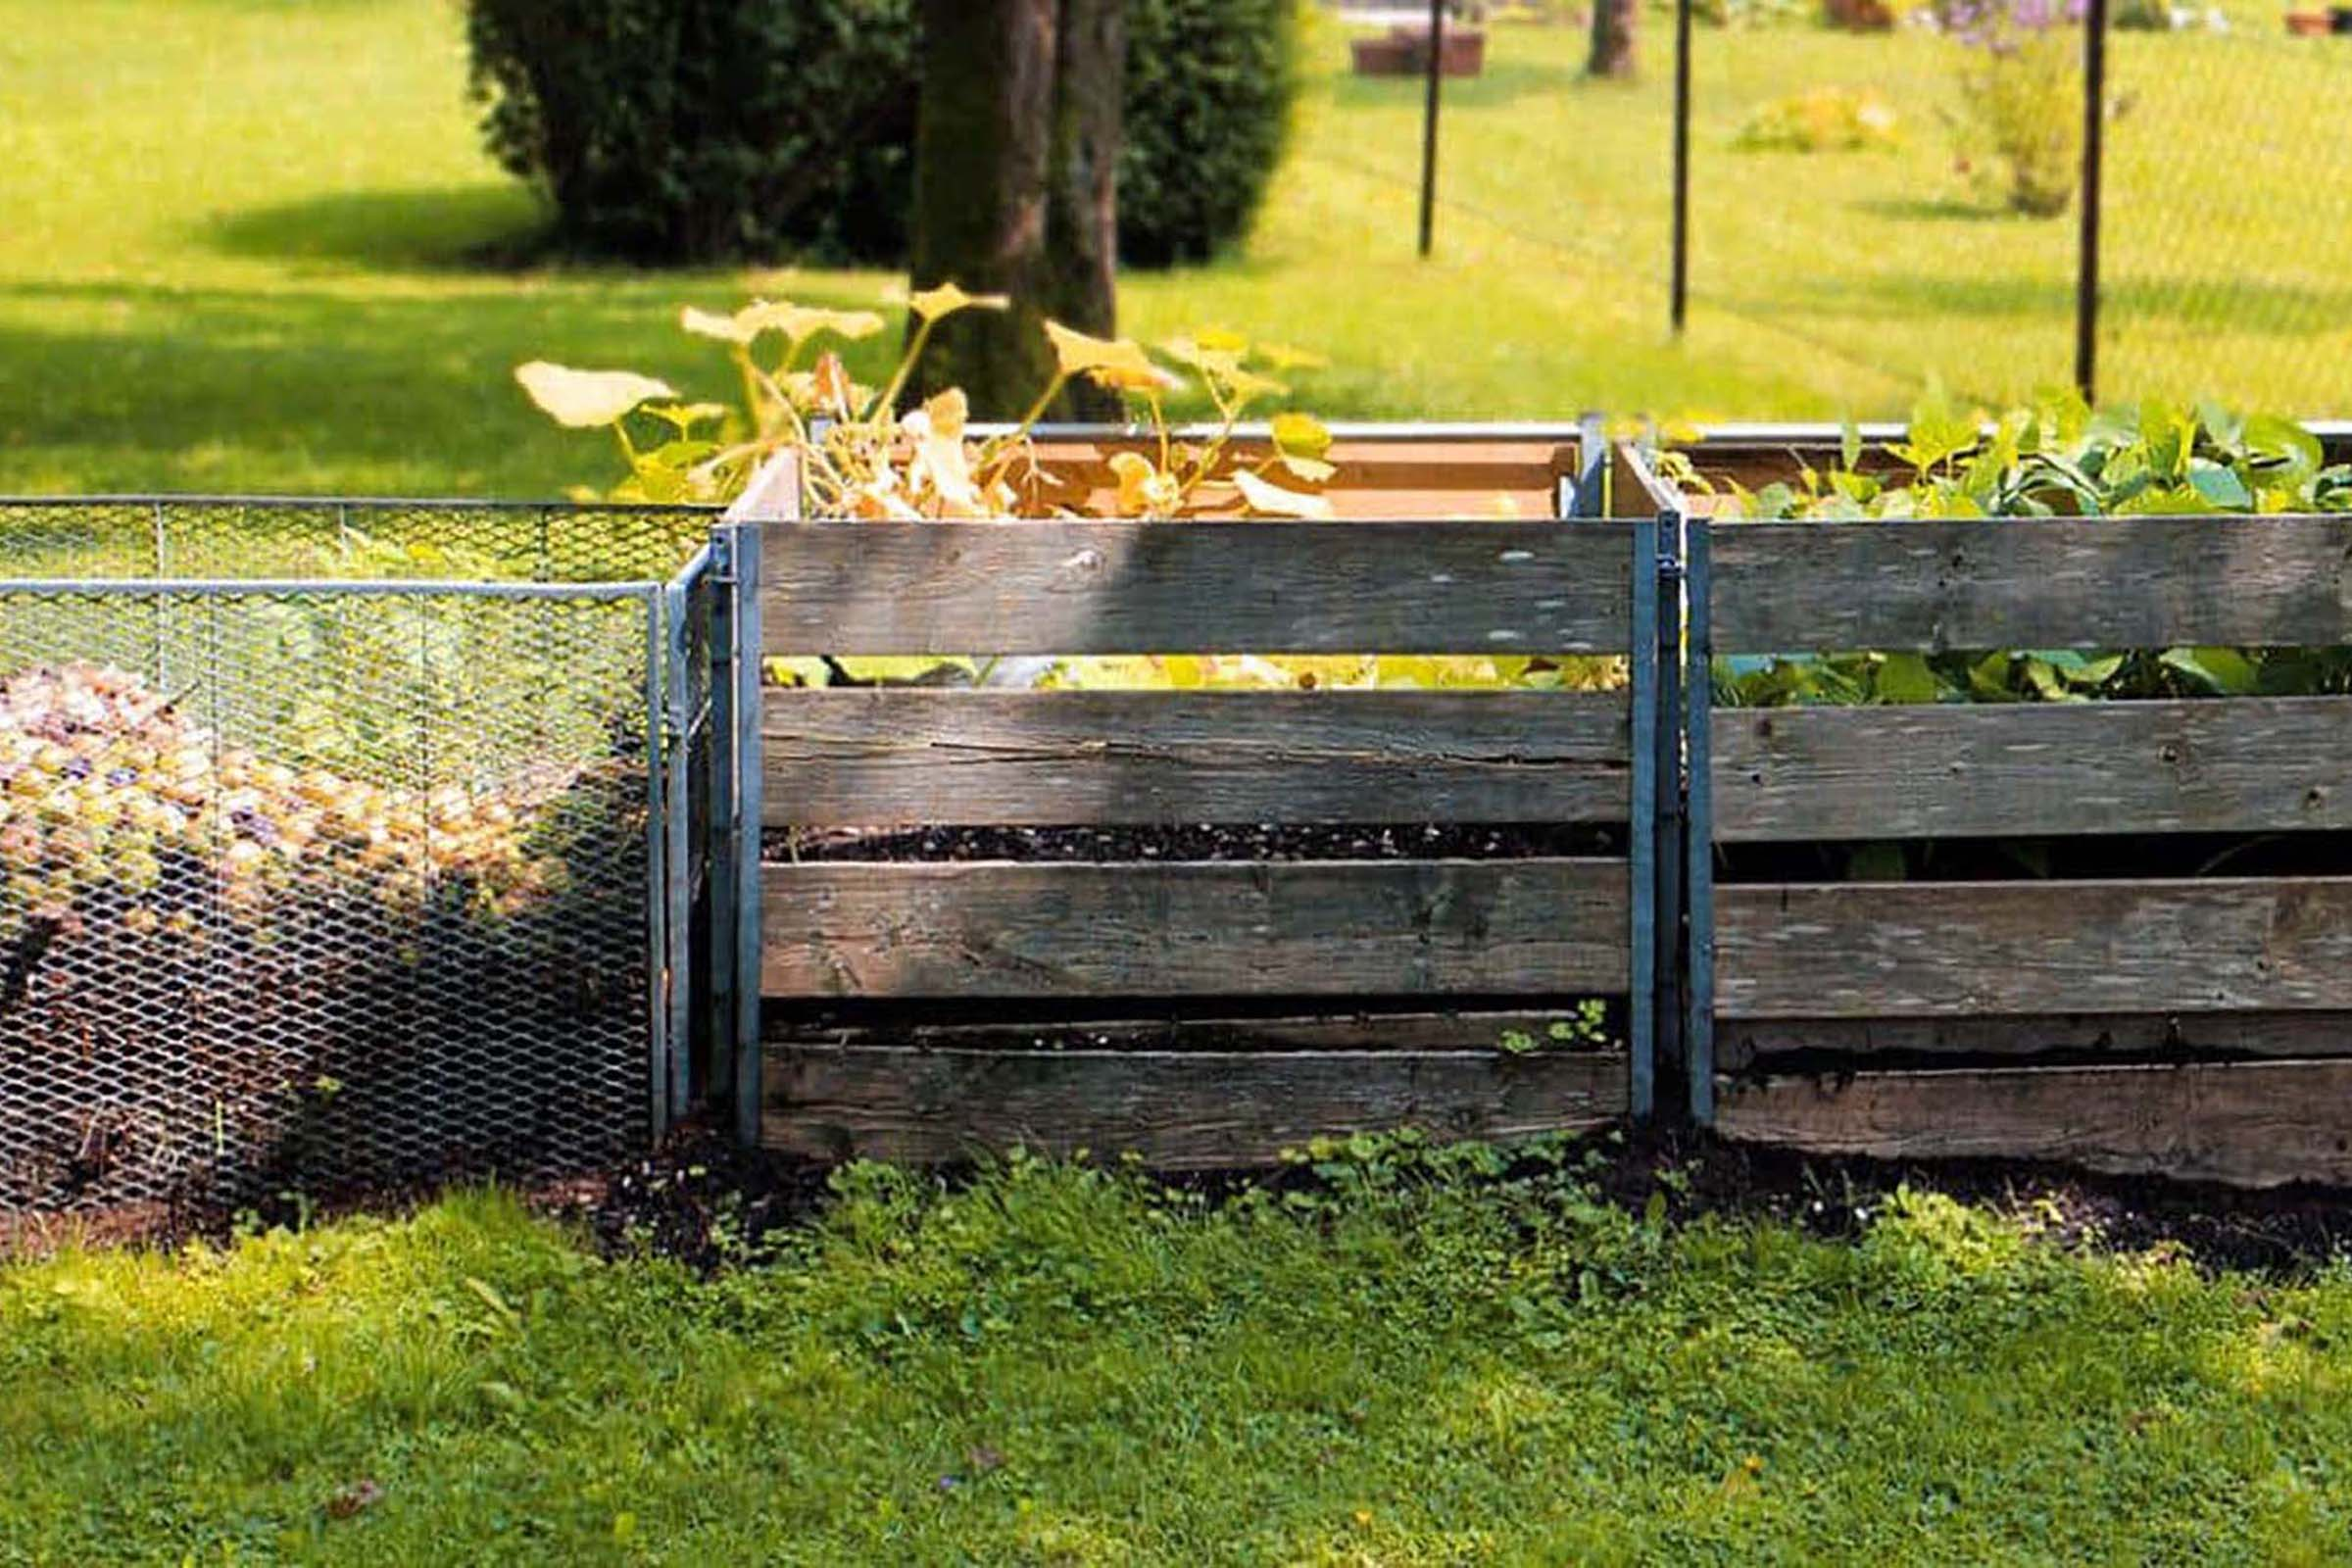 creating compost